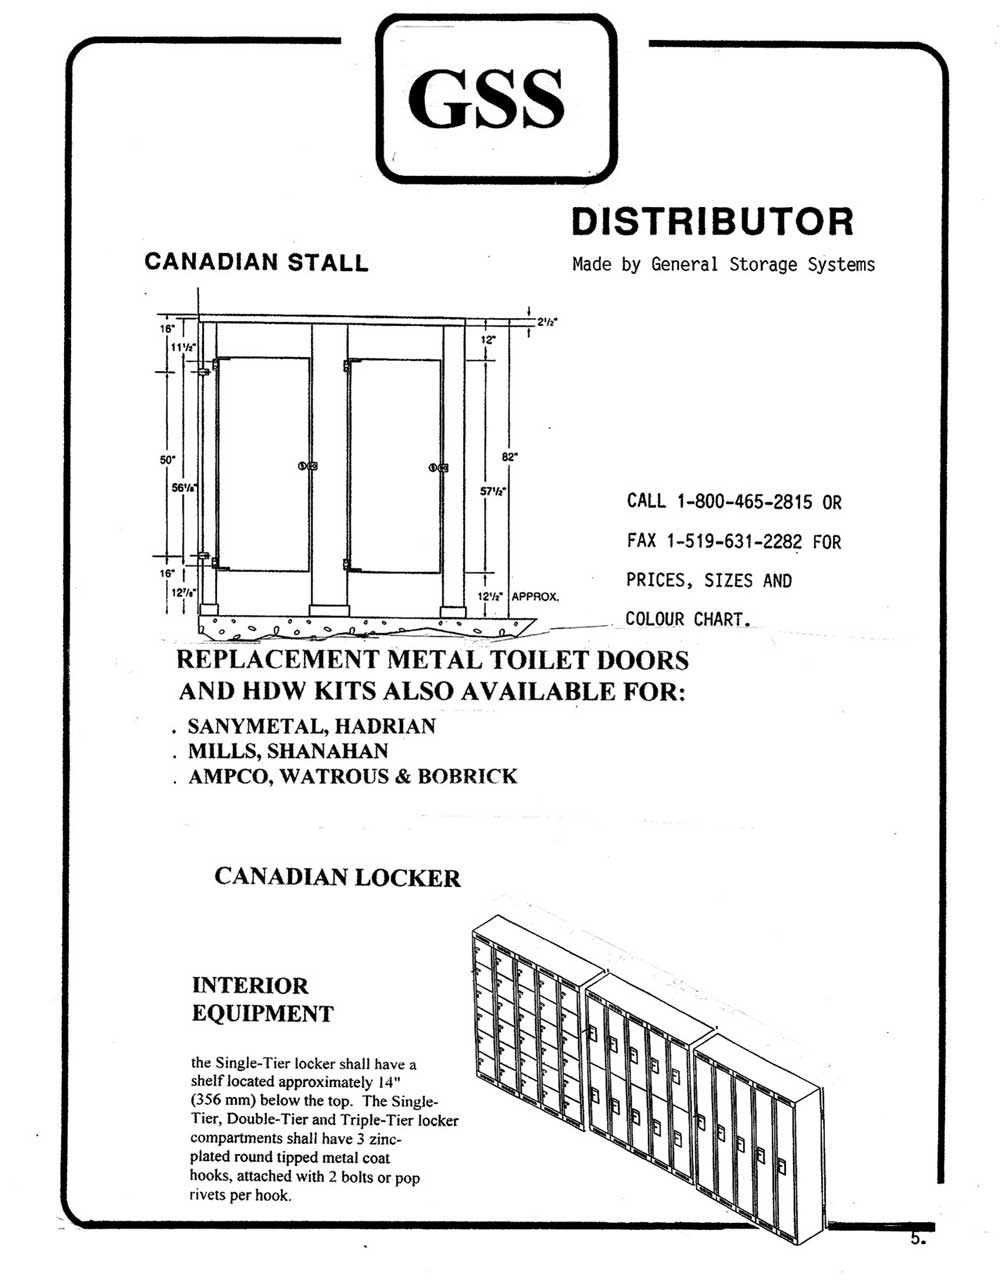 Gss canadian stall canadian locker overview toilet for Knickerbocker bathroom partitions